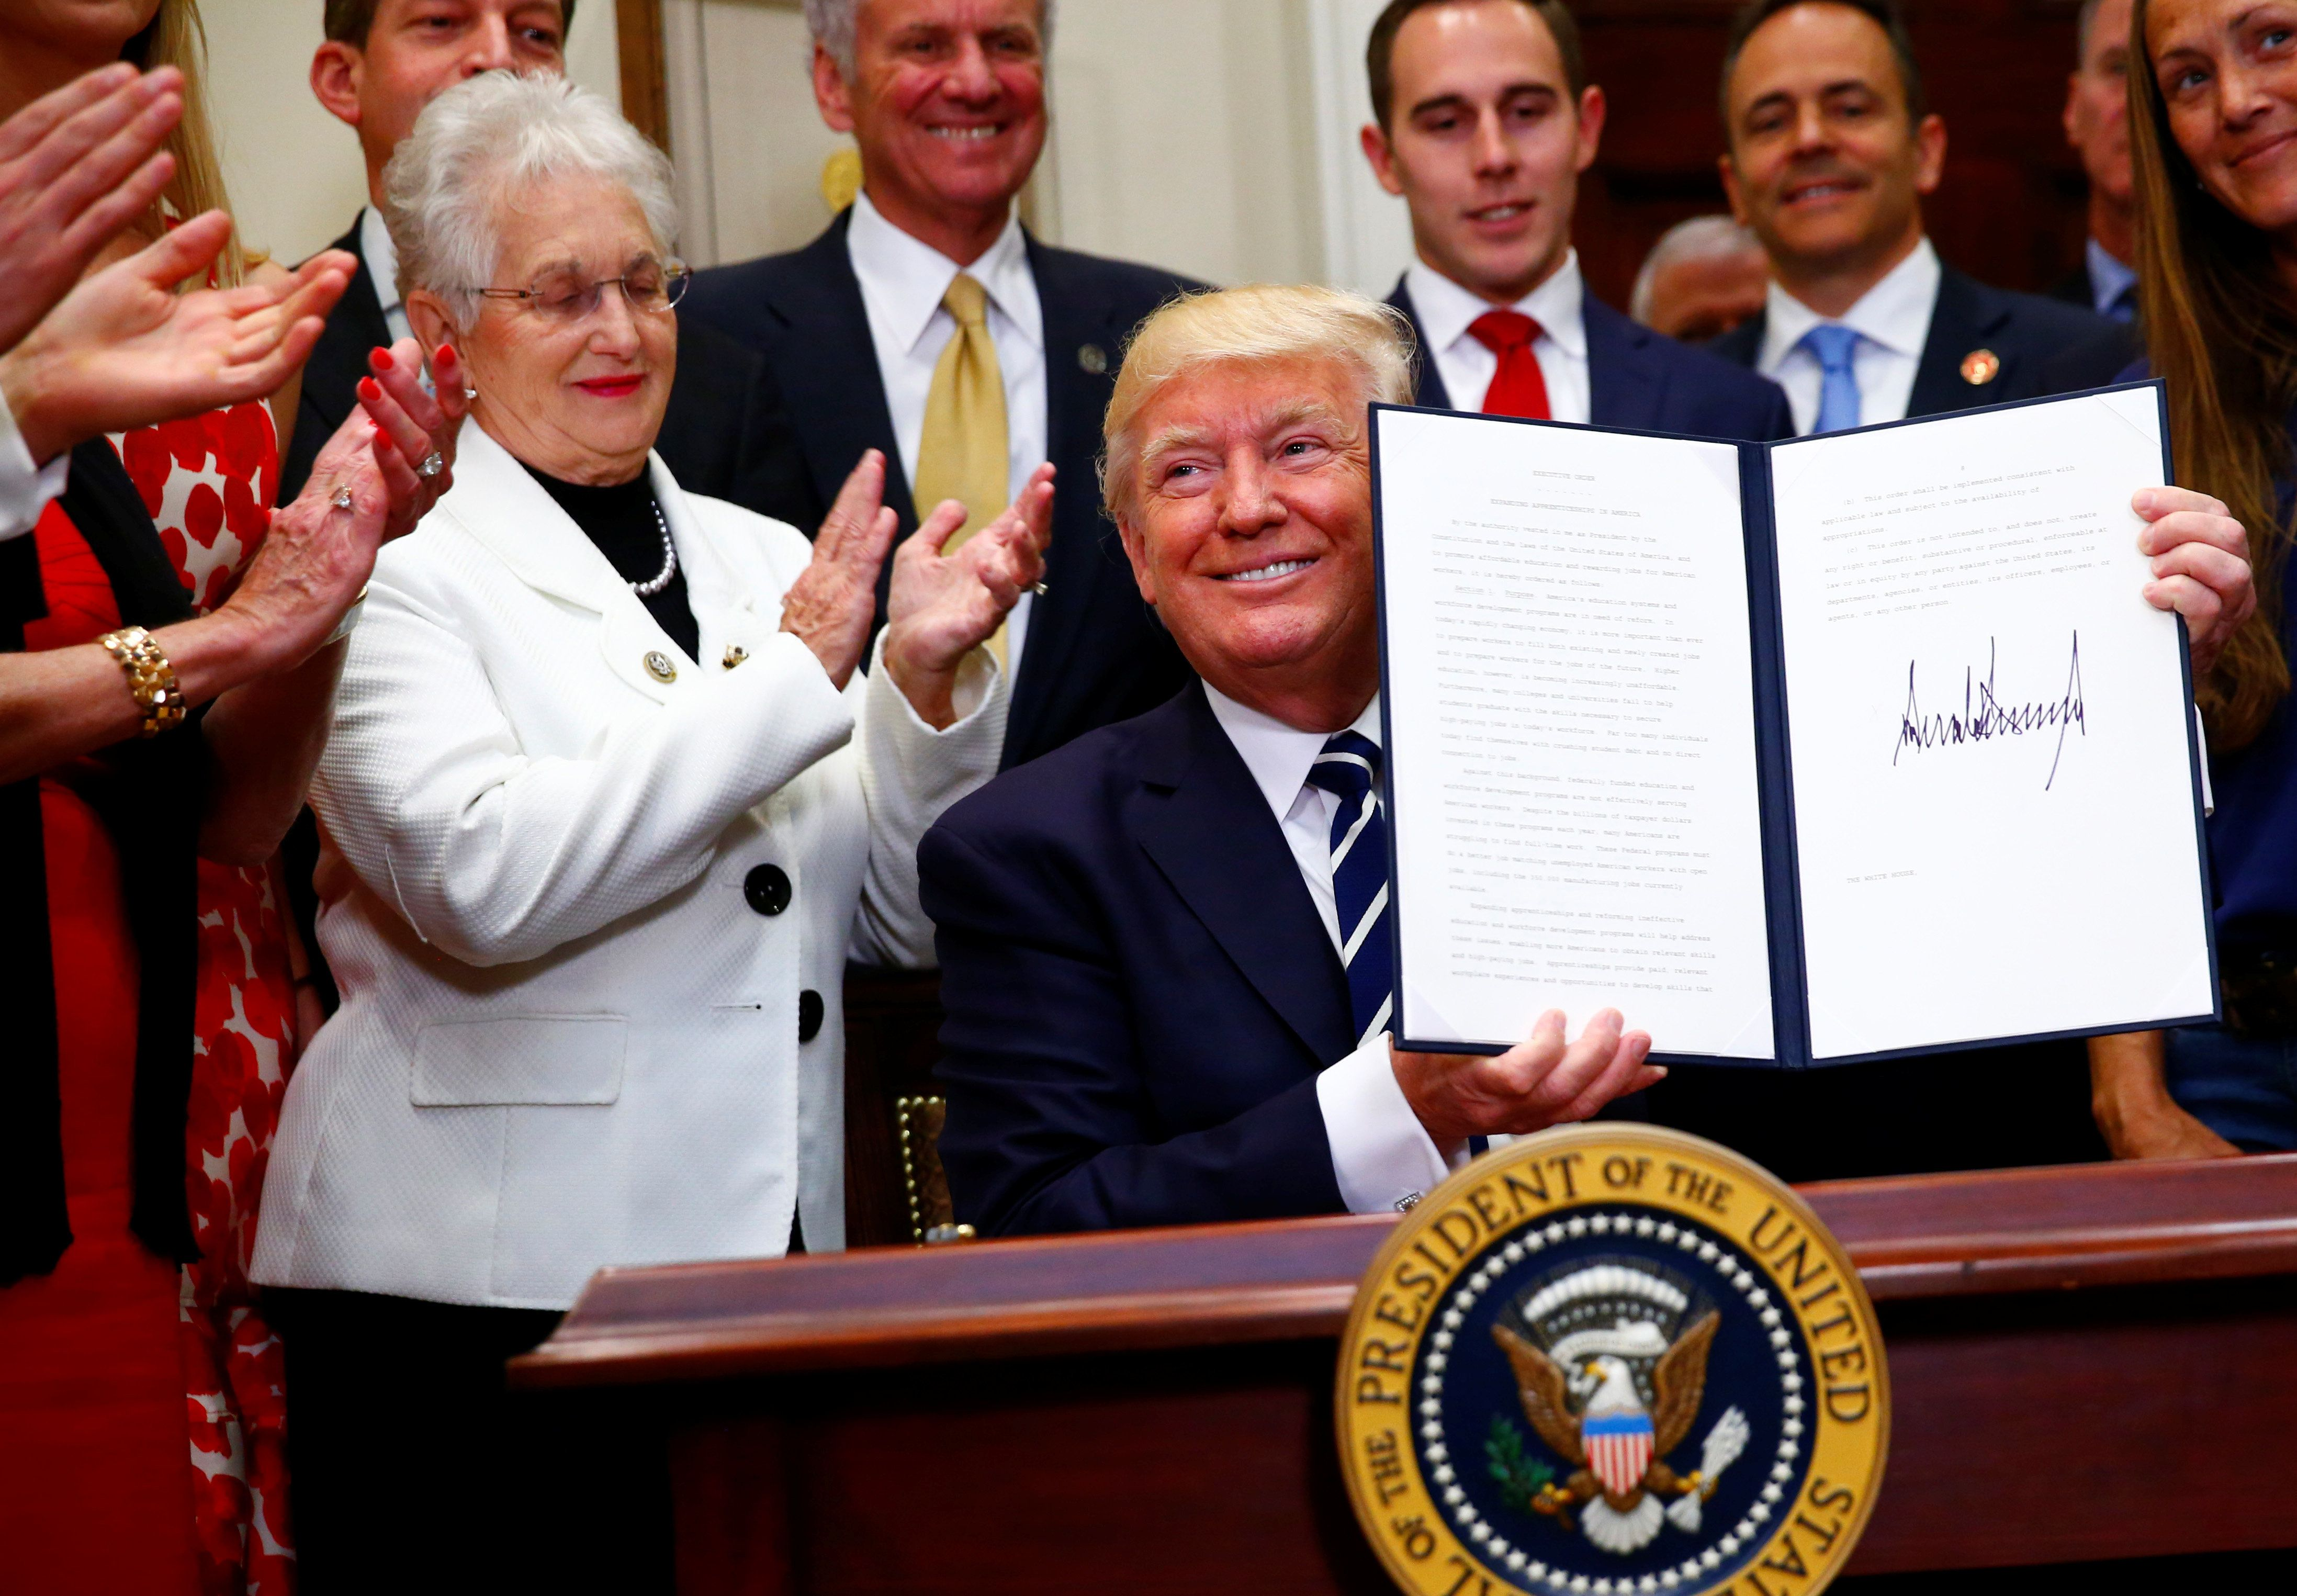 U.S. President Donald Trump signs an executive order at the White House in Washington, U.S. June 15, 2017. REUTERS/Eric Thayer     TPX IMAGES OF THE DAY